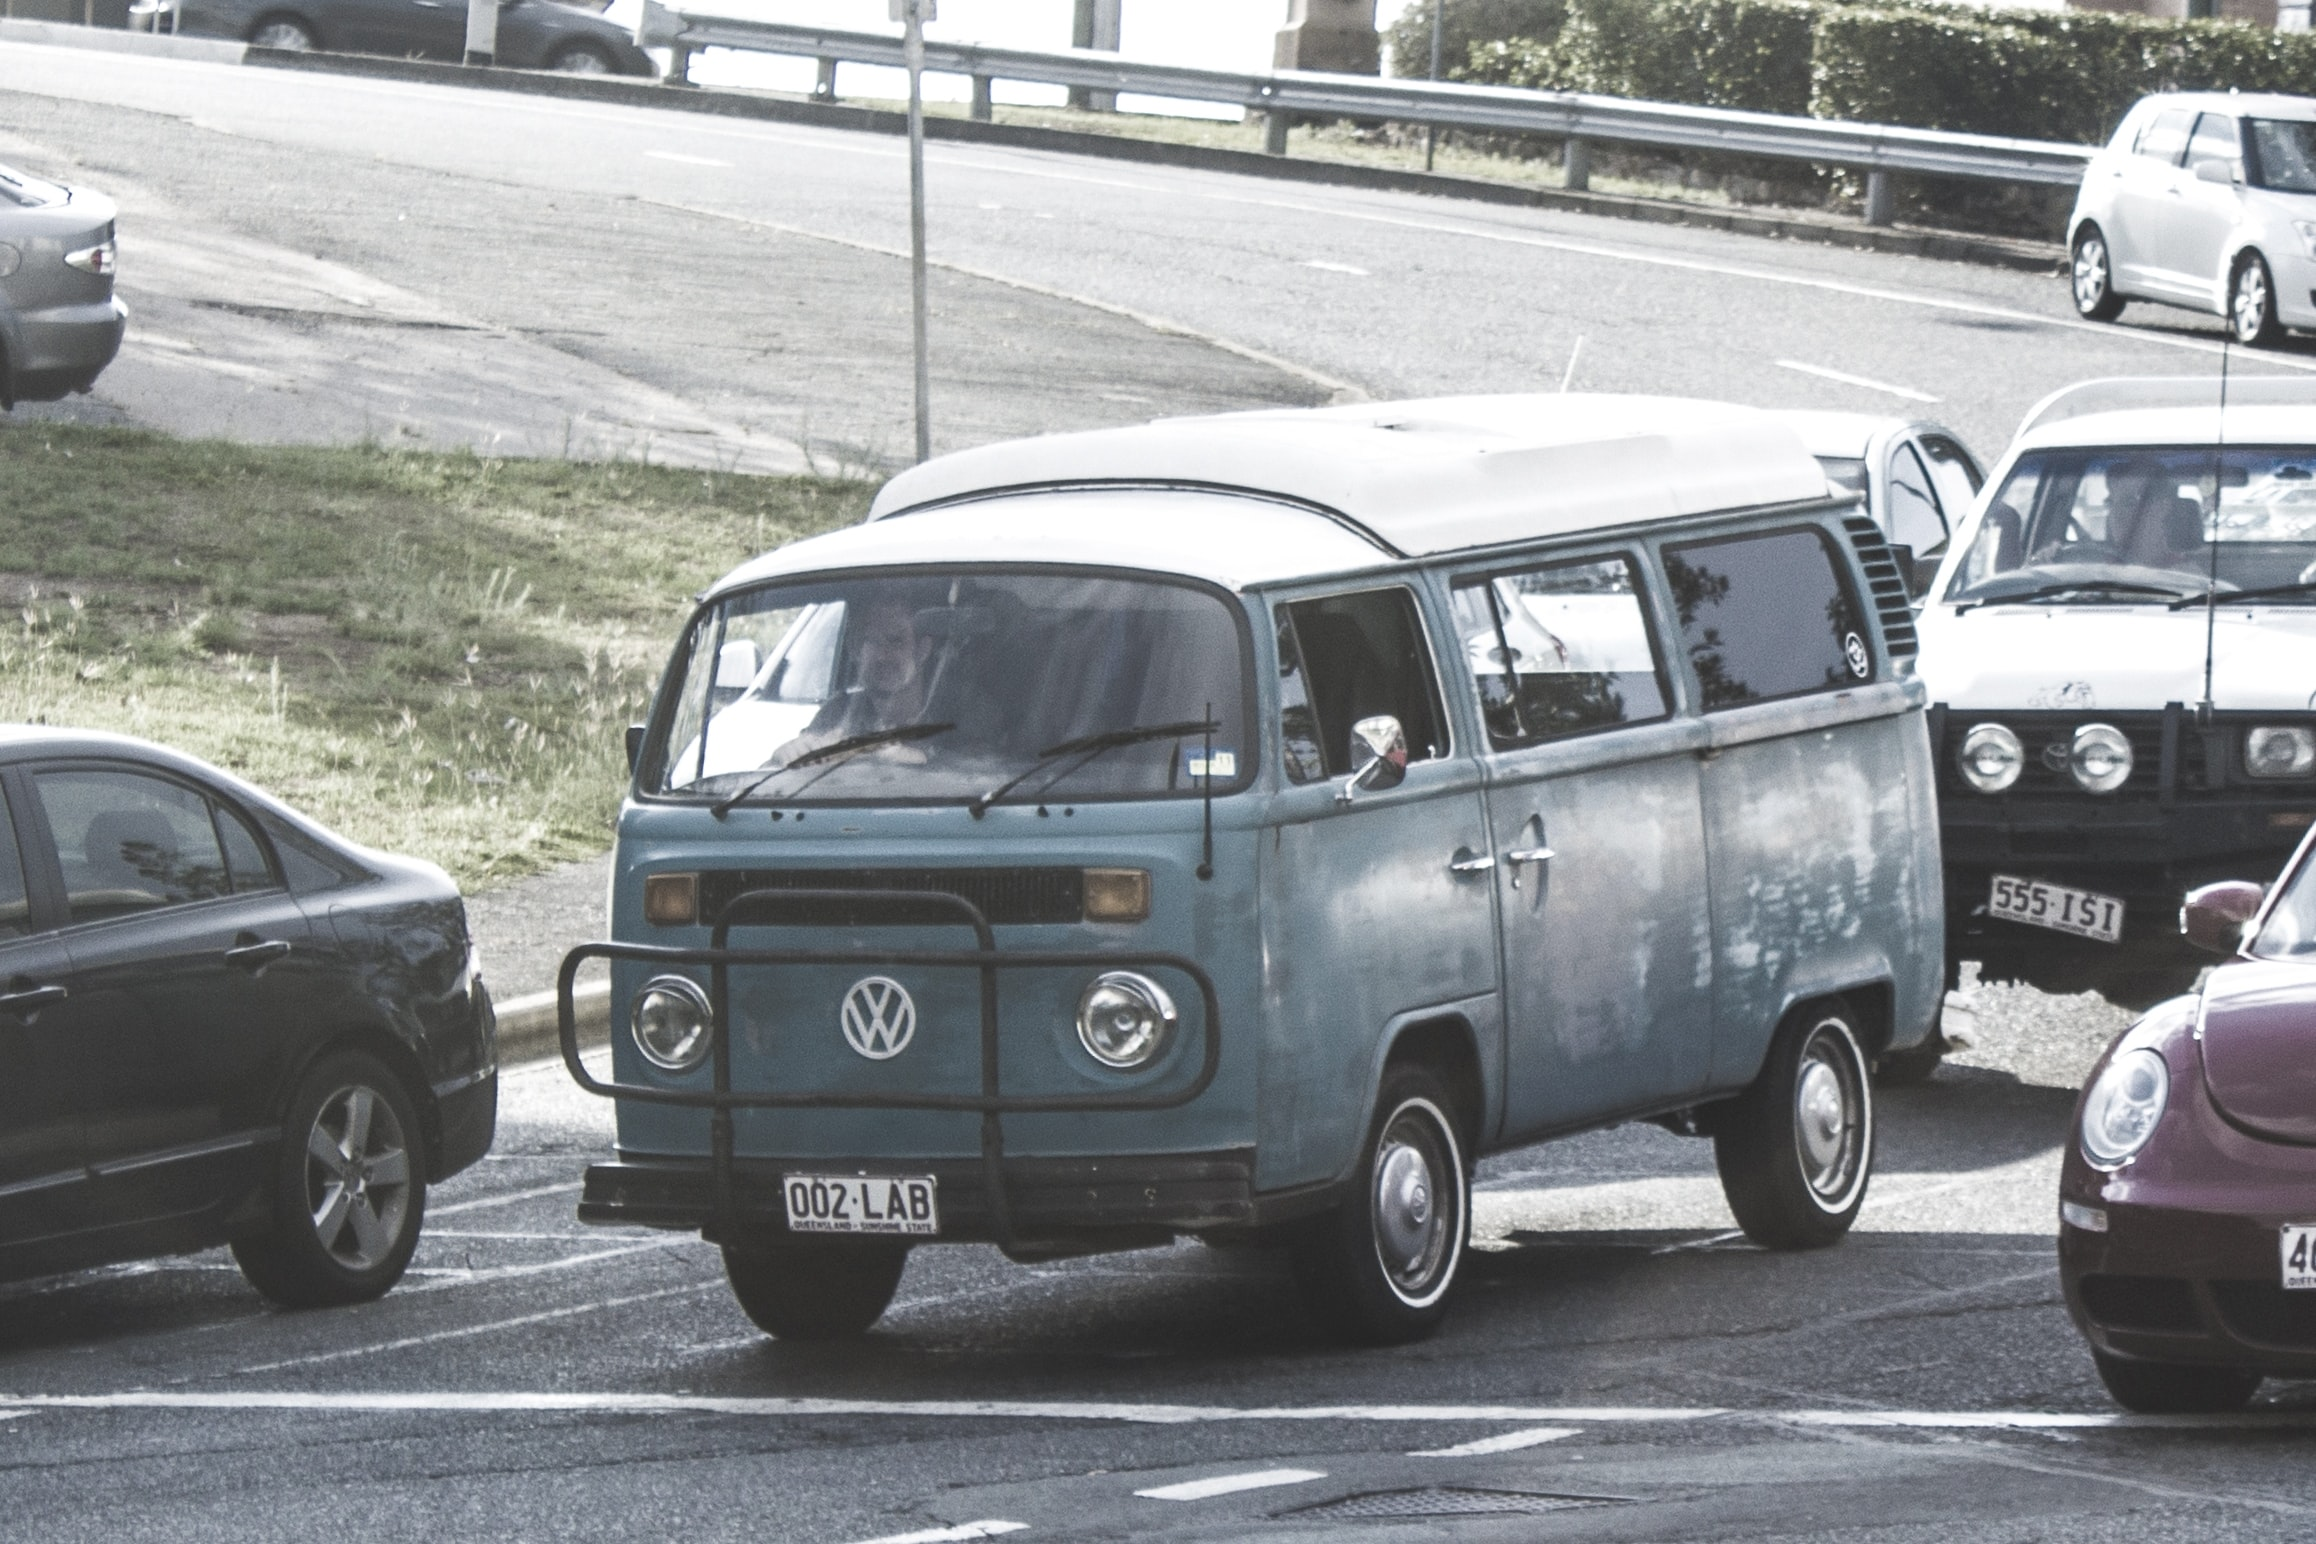 Vintage green Volkswagen camper driving in daytime traffic on road